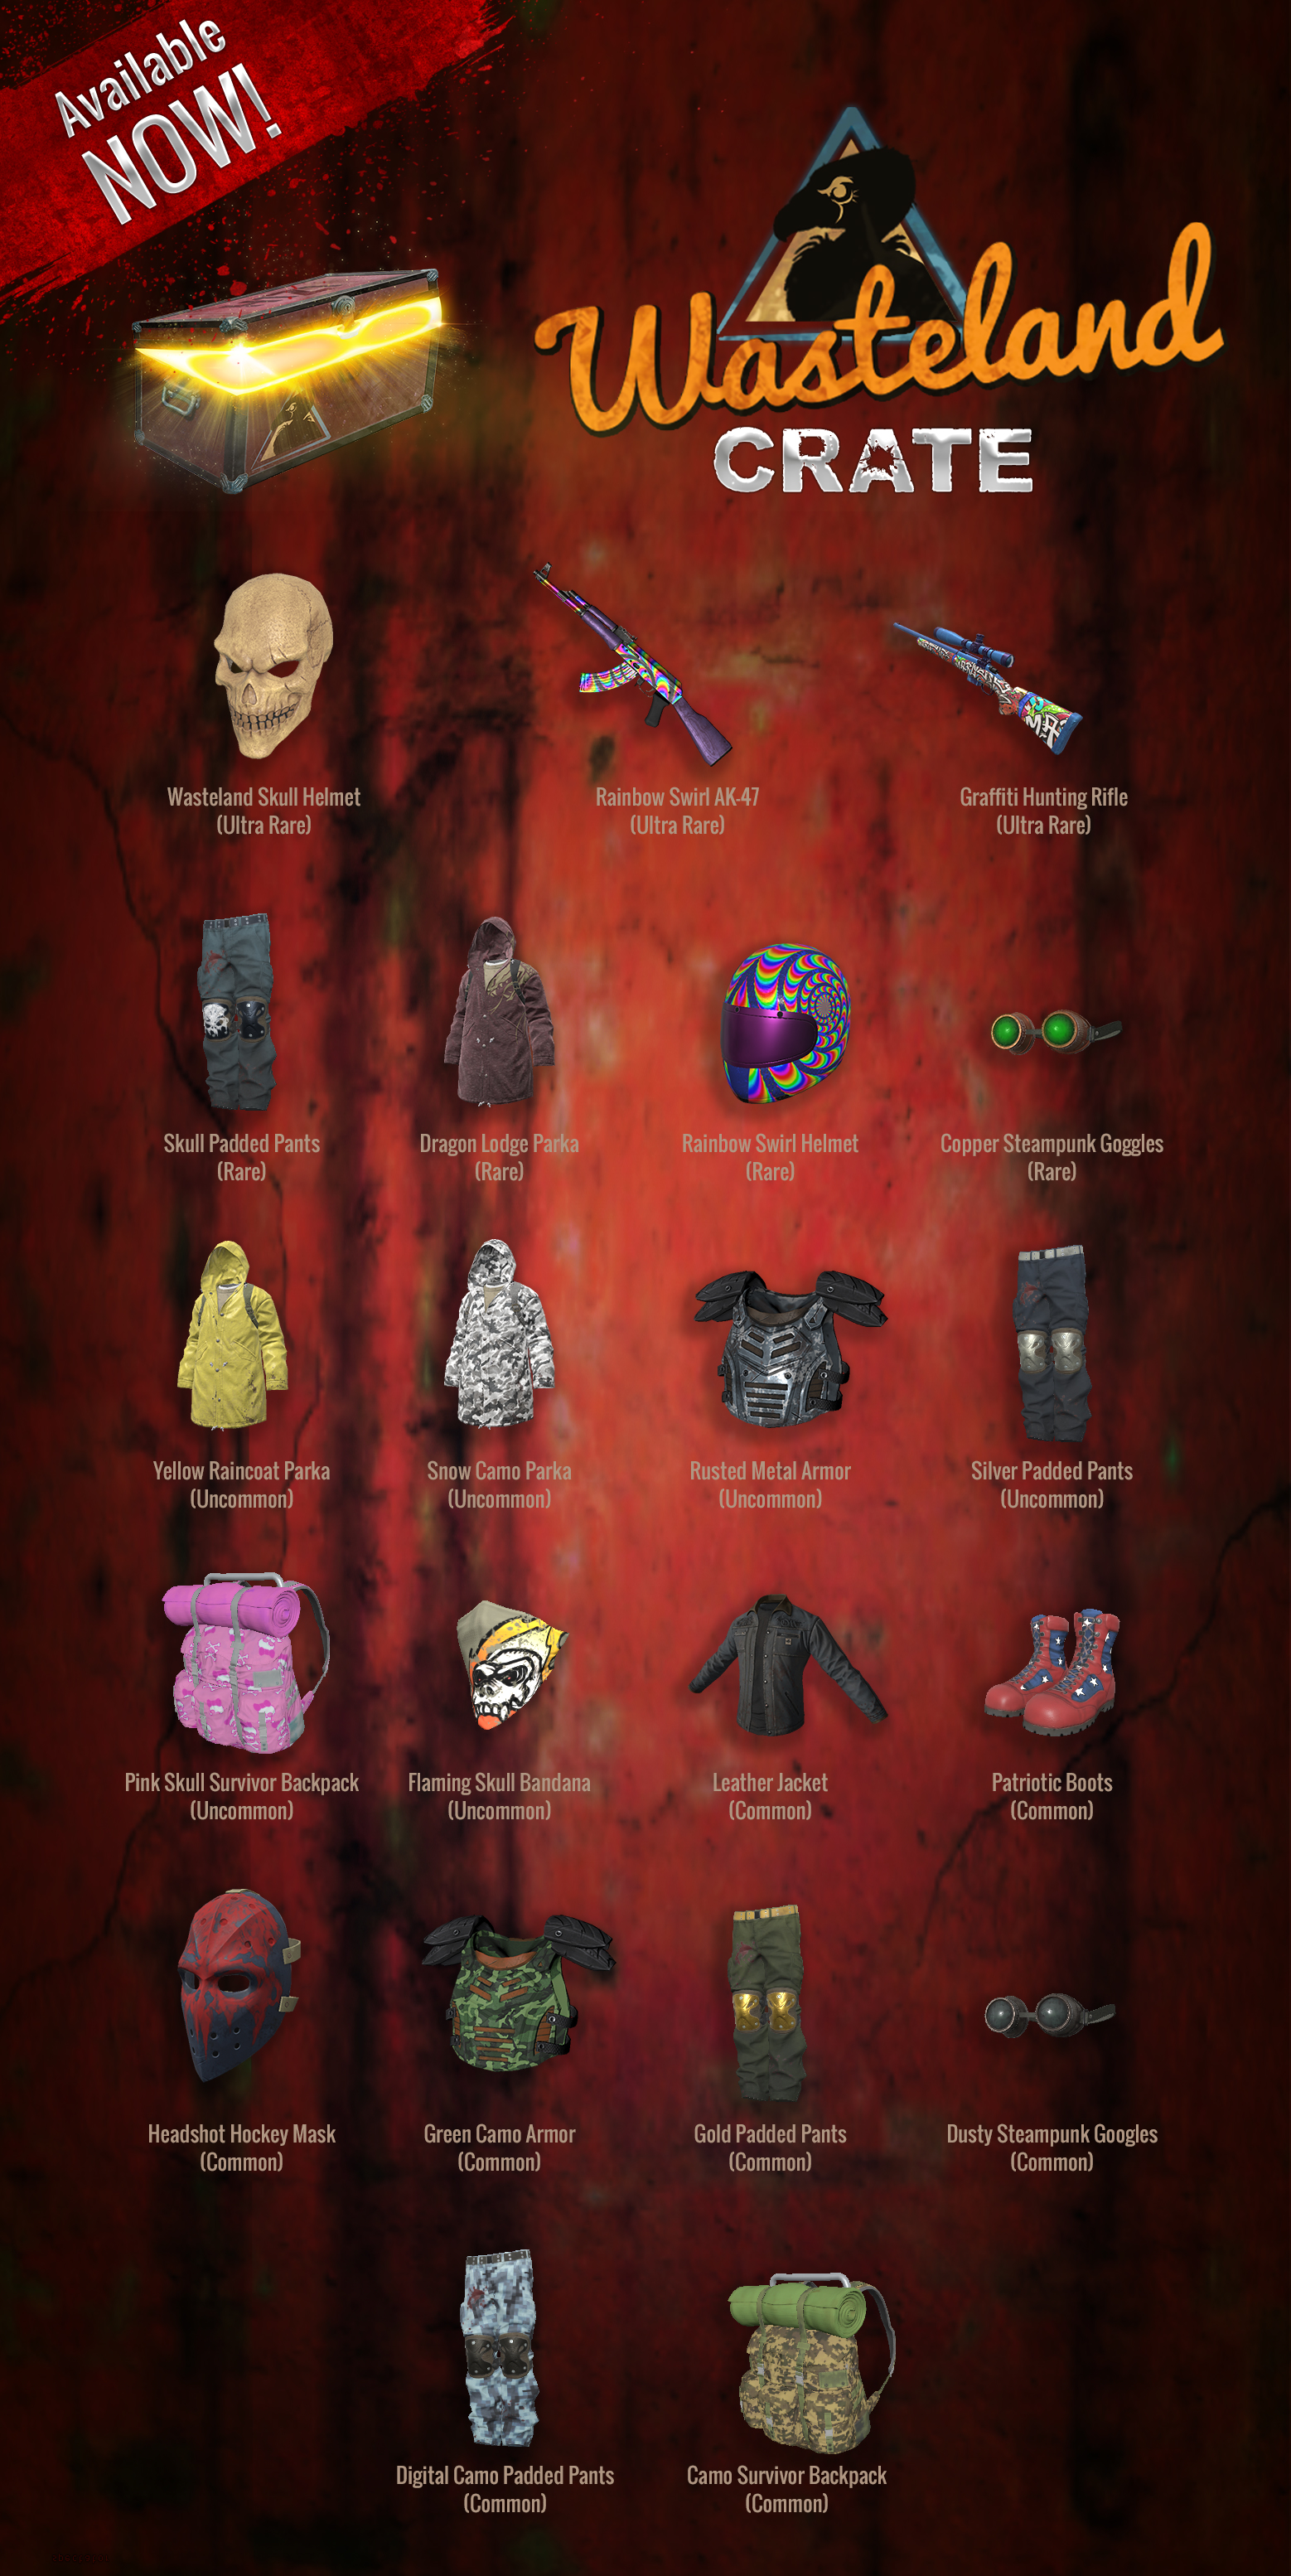 402?v=1.0 new wasteland crate king of the kill massively multiplayer,Invitational H1z1 Crate